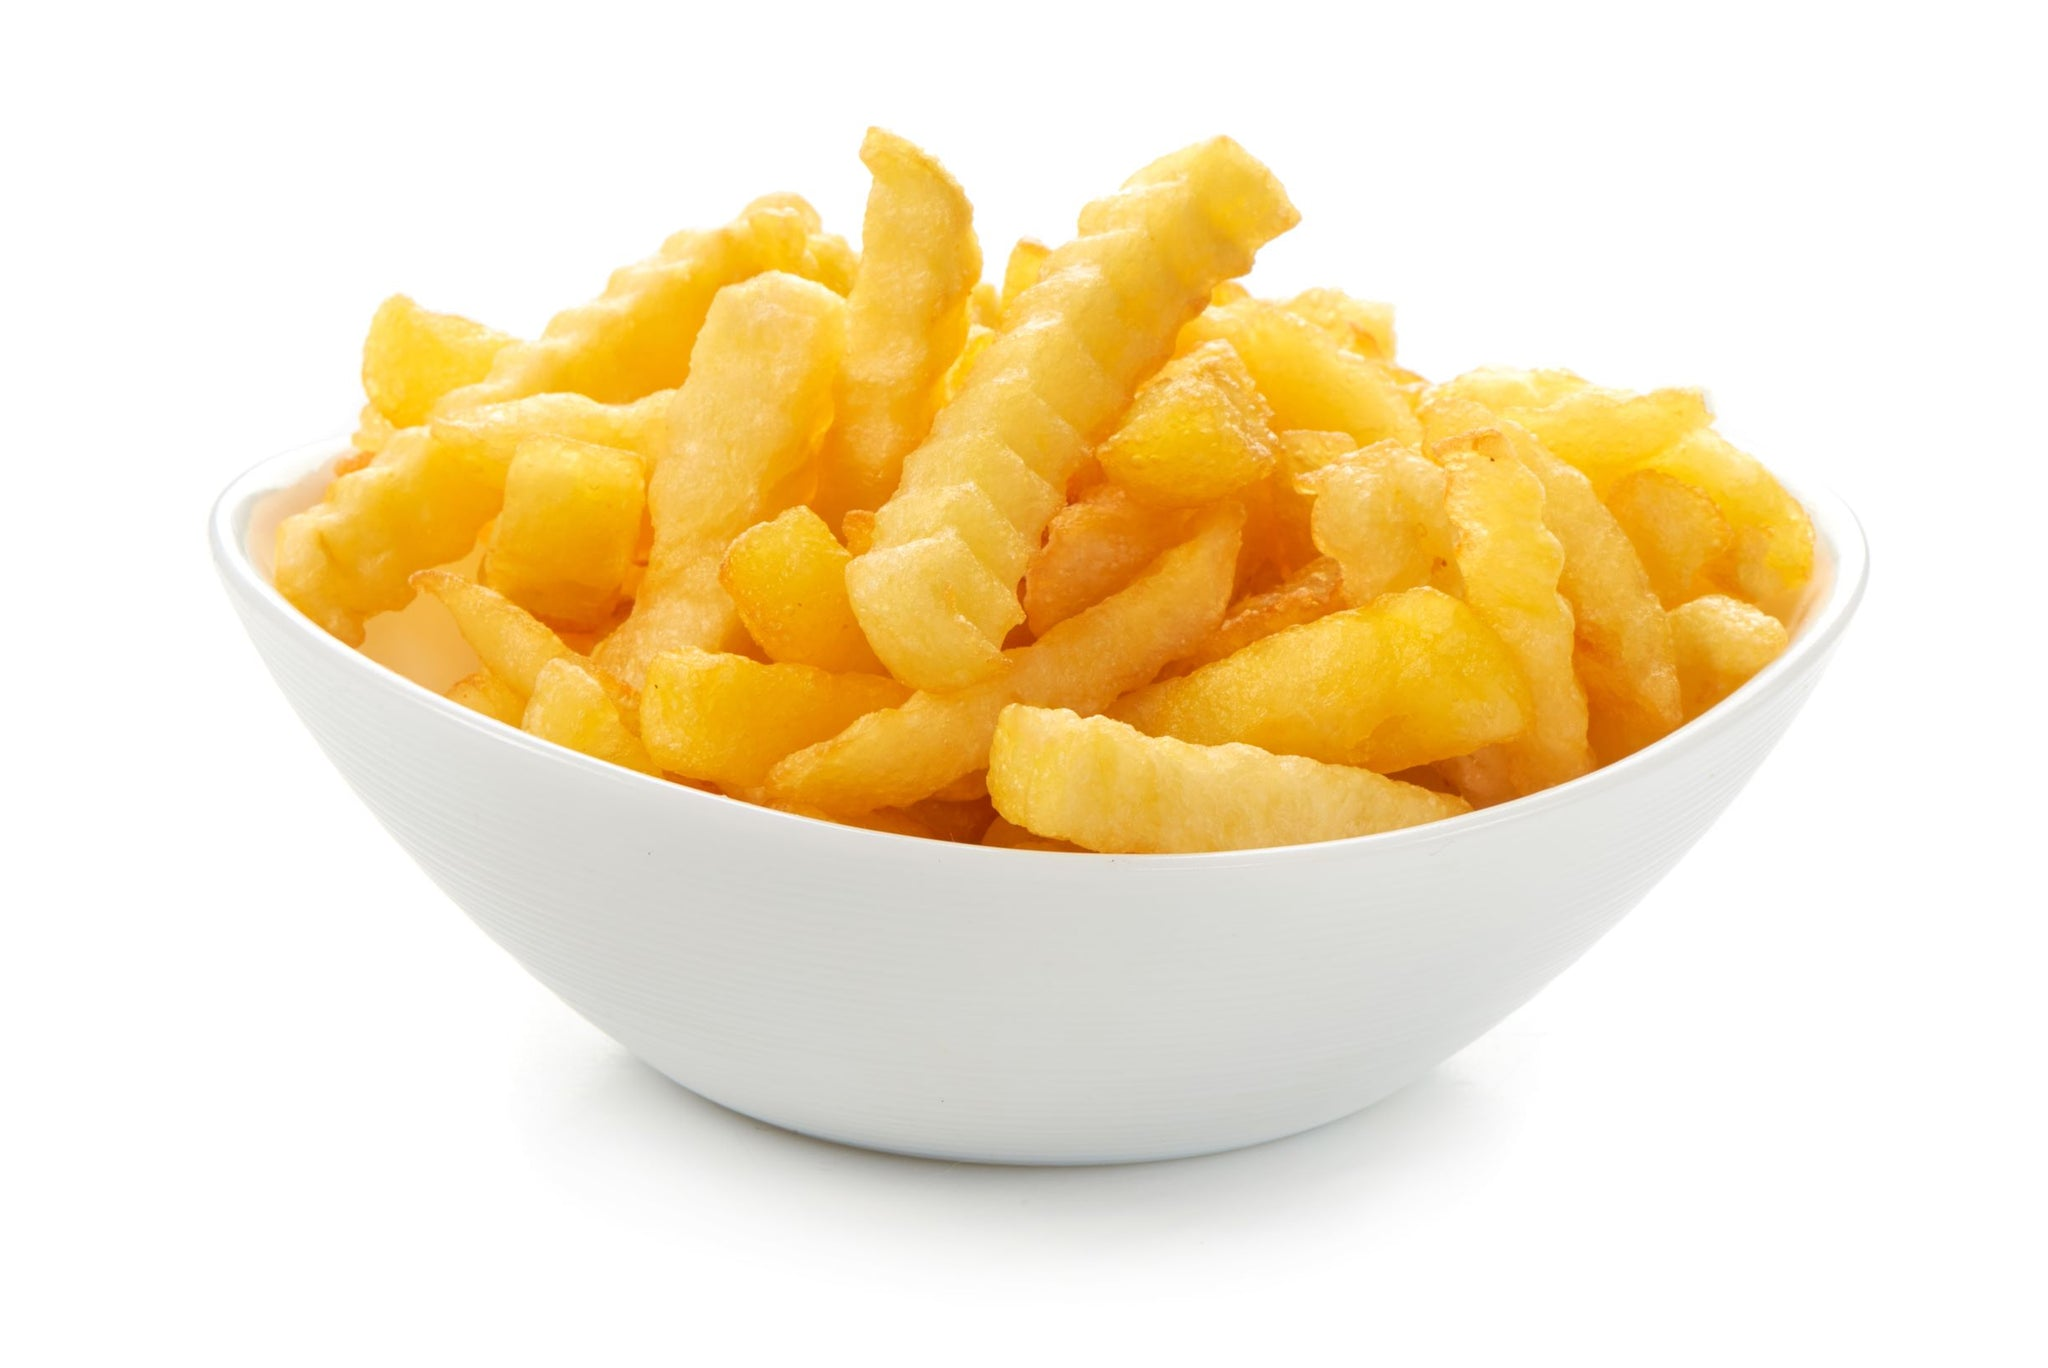 McCain Frozen Skin on Brined French Fries 5 lb - 6 Pack [$1.30/lb]